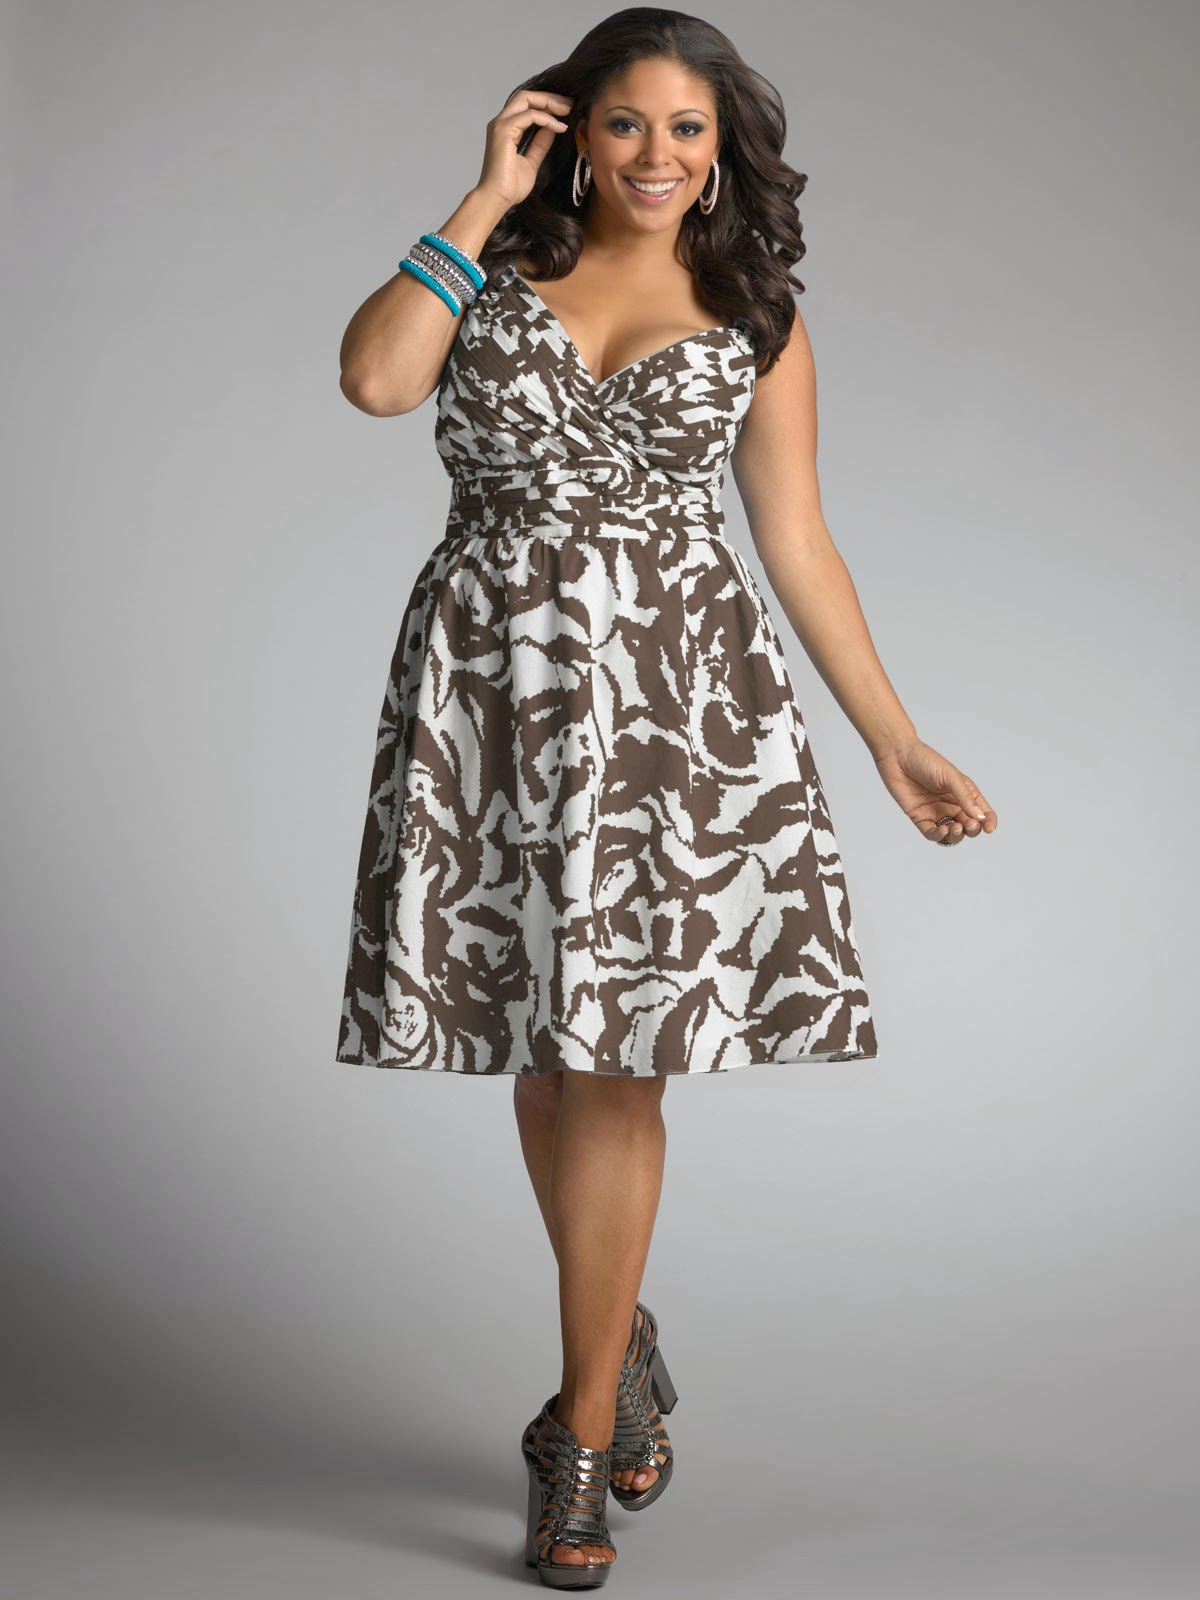 Best plus size womens clothing stores